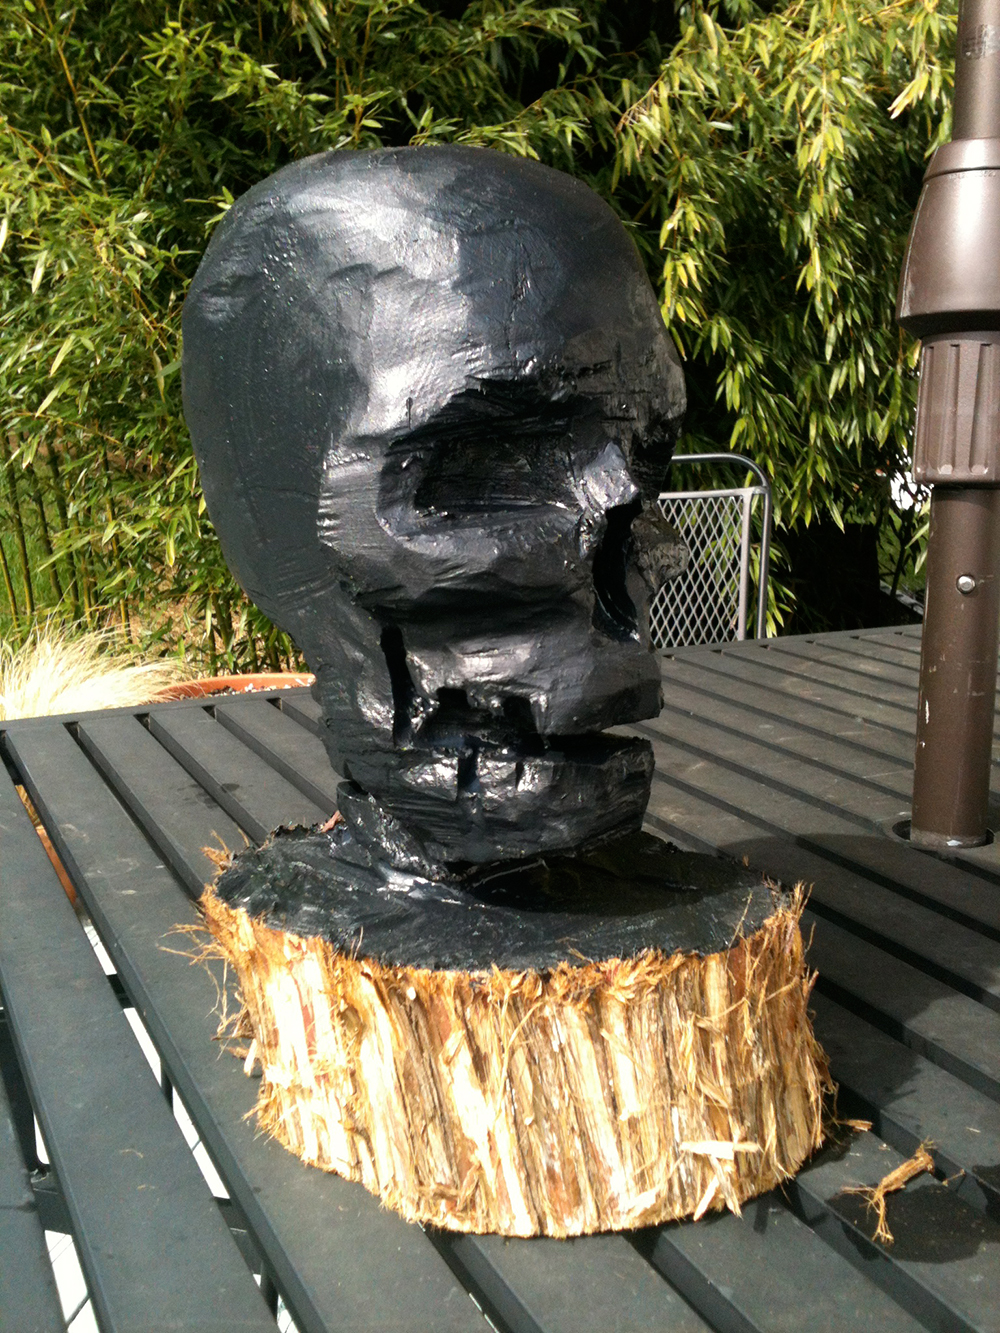 zdepski's chainsaw carving of a skull, painted black